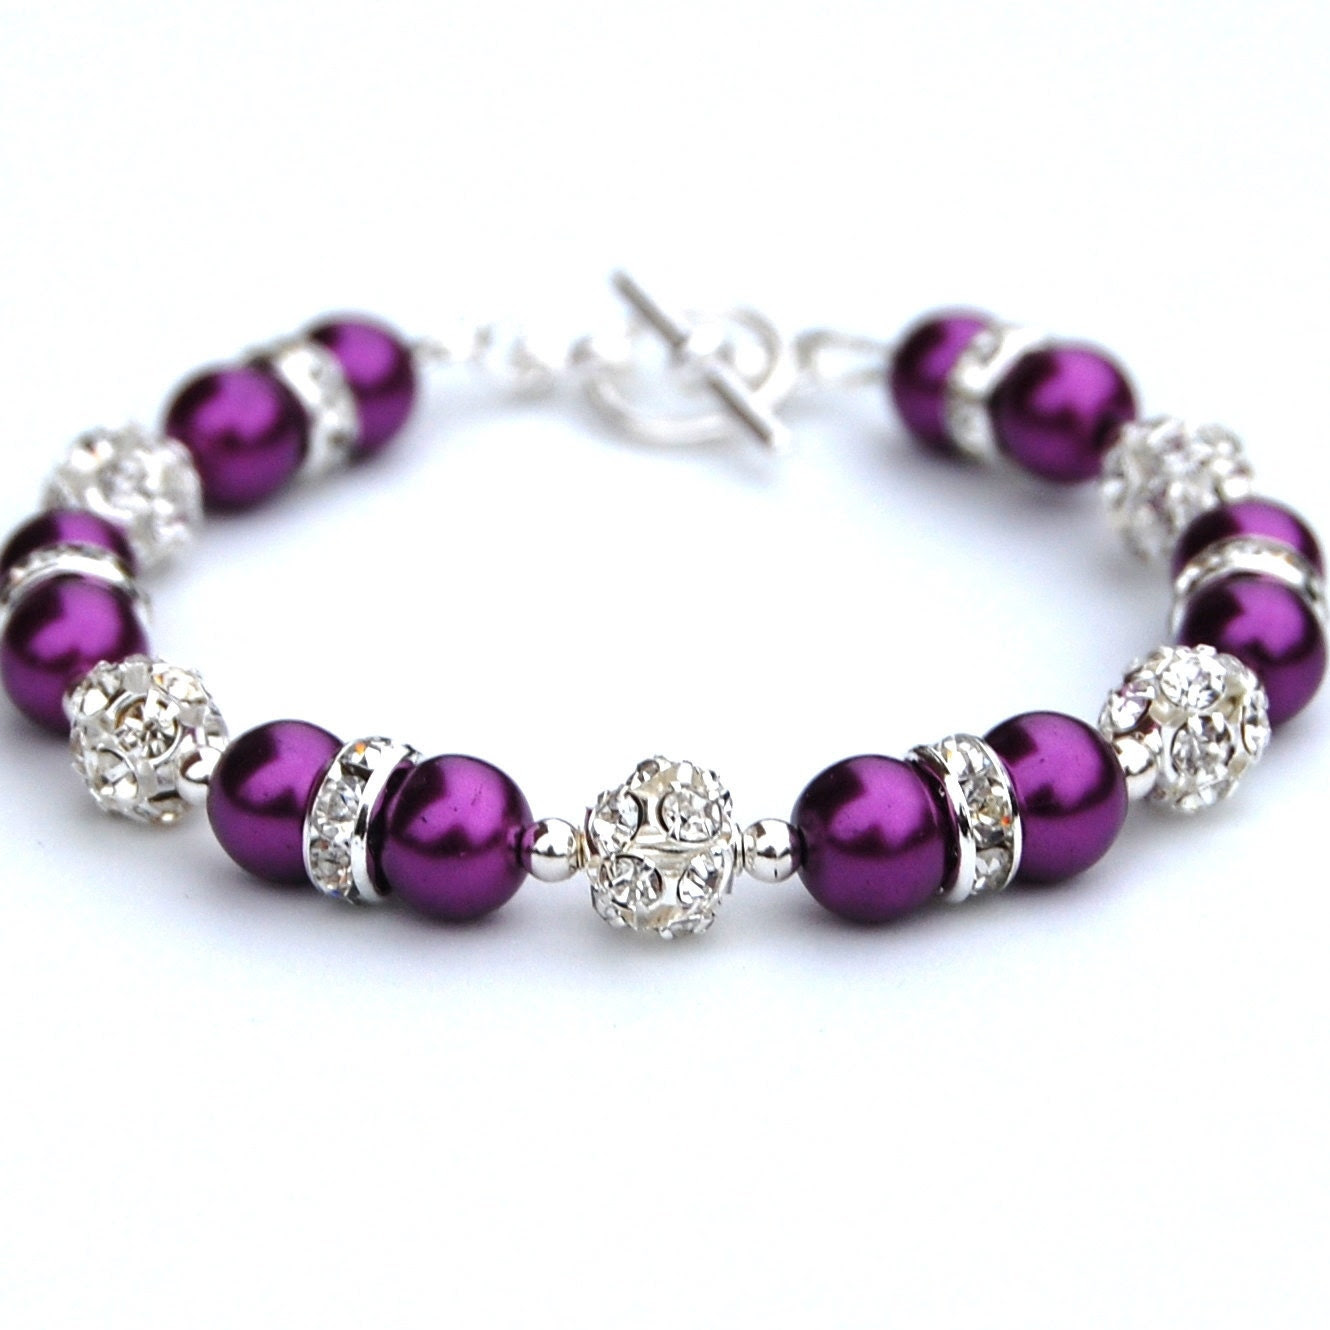 Pansy Purple Pearl Rhinestone Bracelet, Bridesmaid Gifts, Bridal Party, Spring Wedding